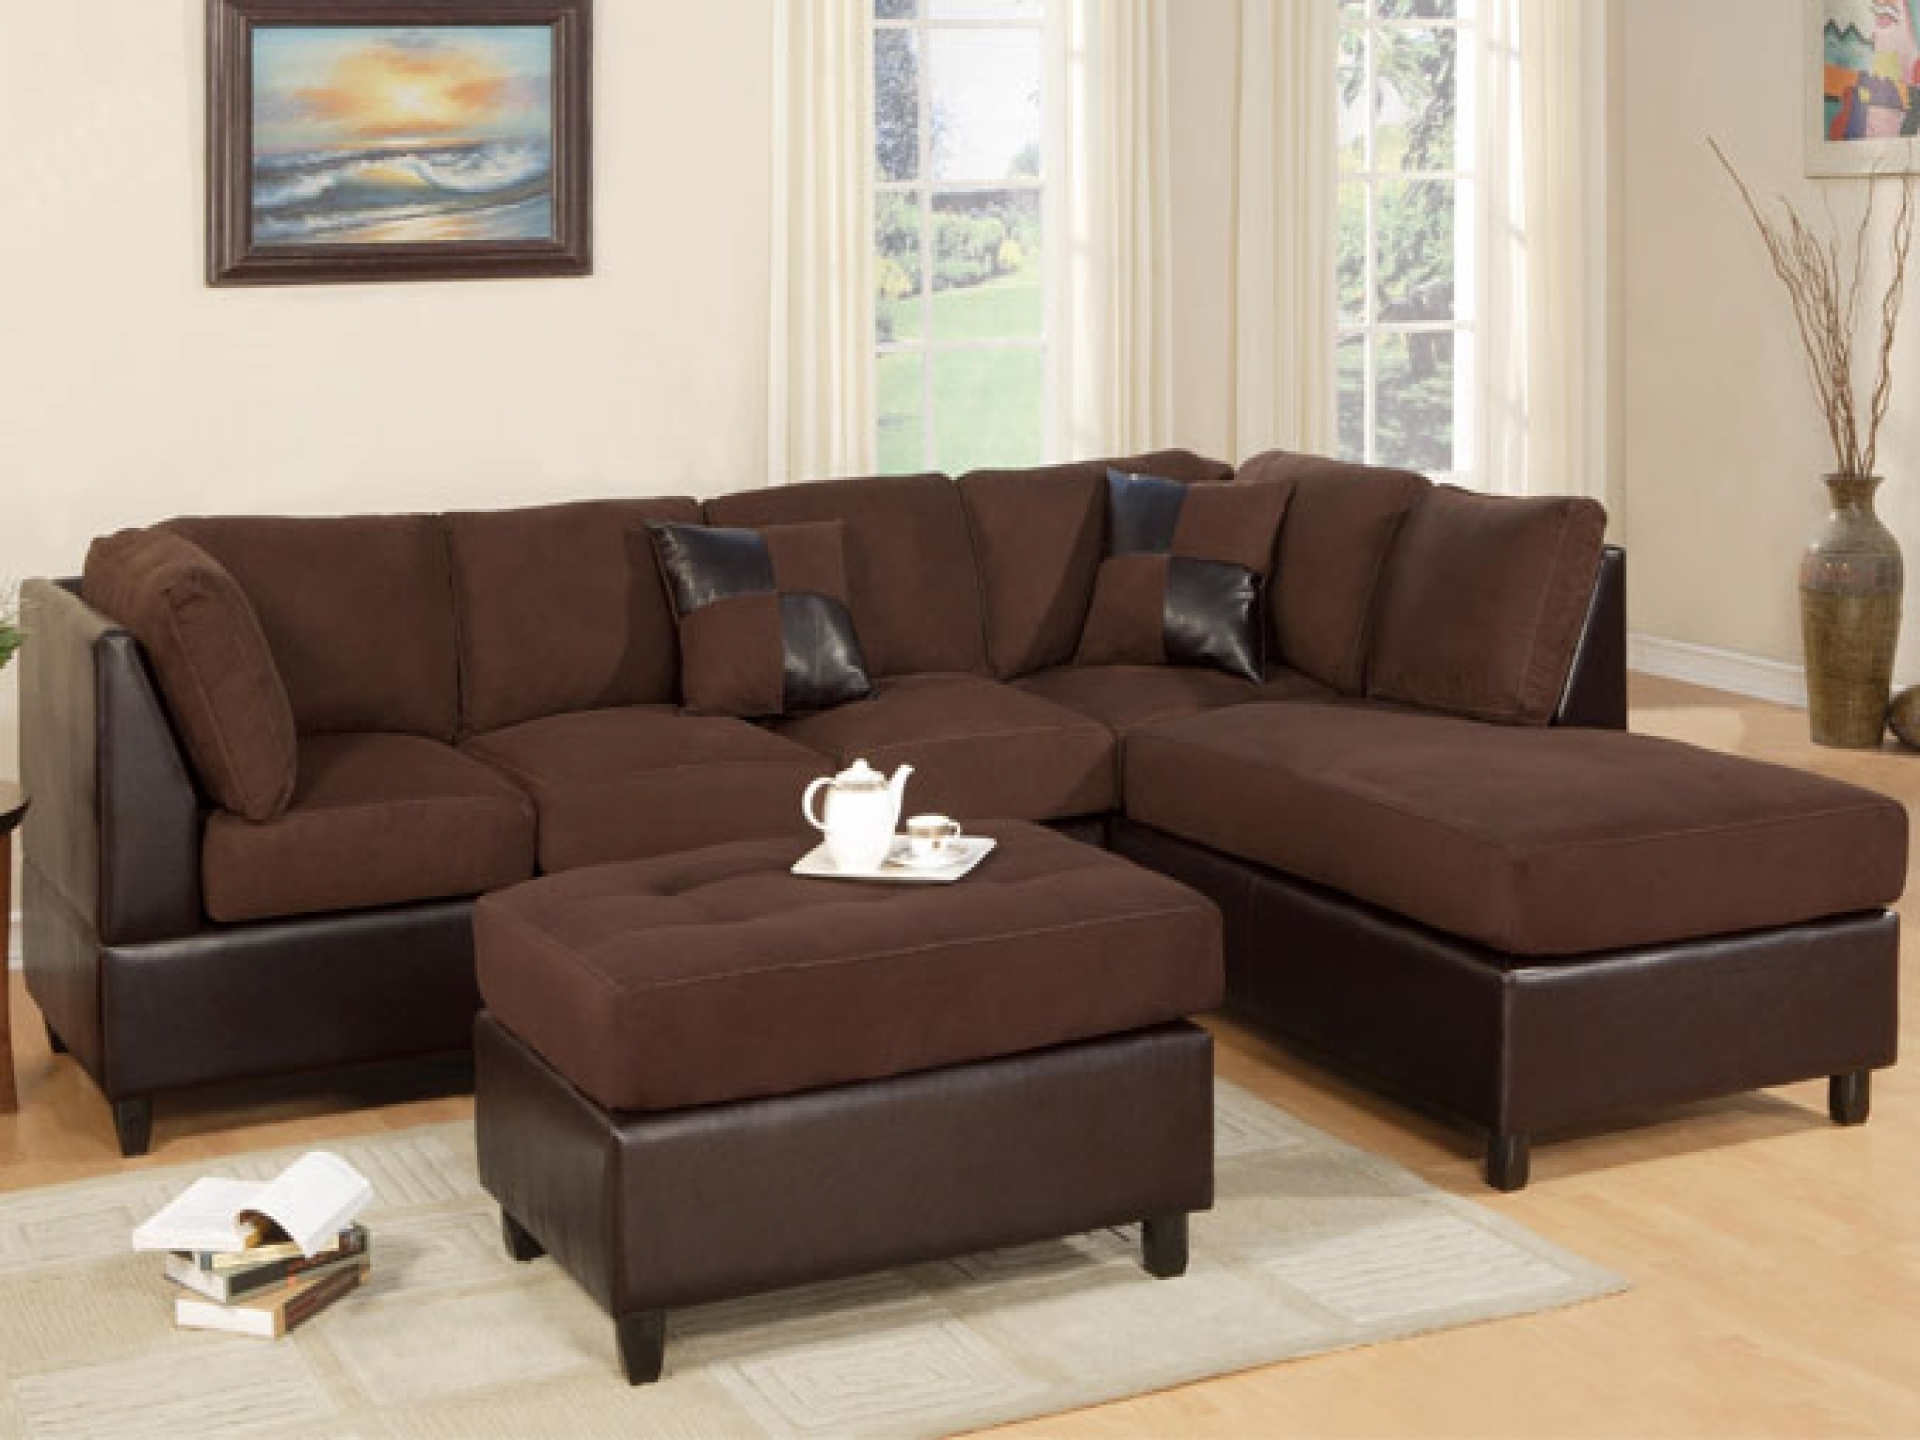 Famous Furniture : Sectional Couch Pieces Recliner Table Corner Sofa John Inside Ontario Sectional Sofas (View 2 of 15)